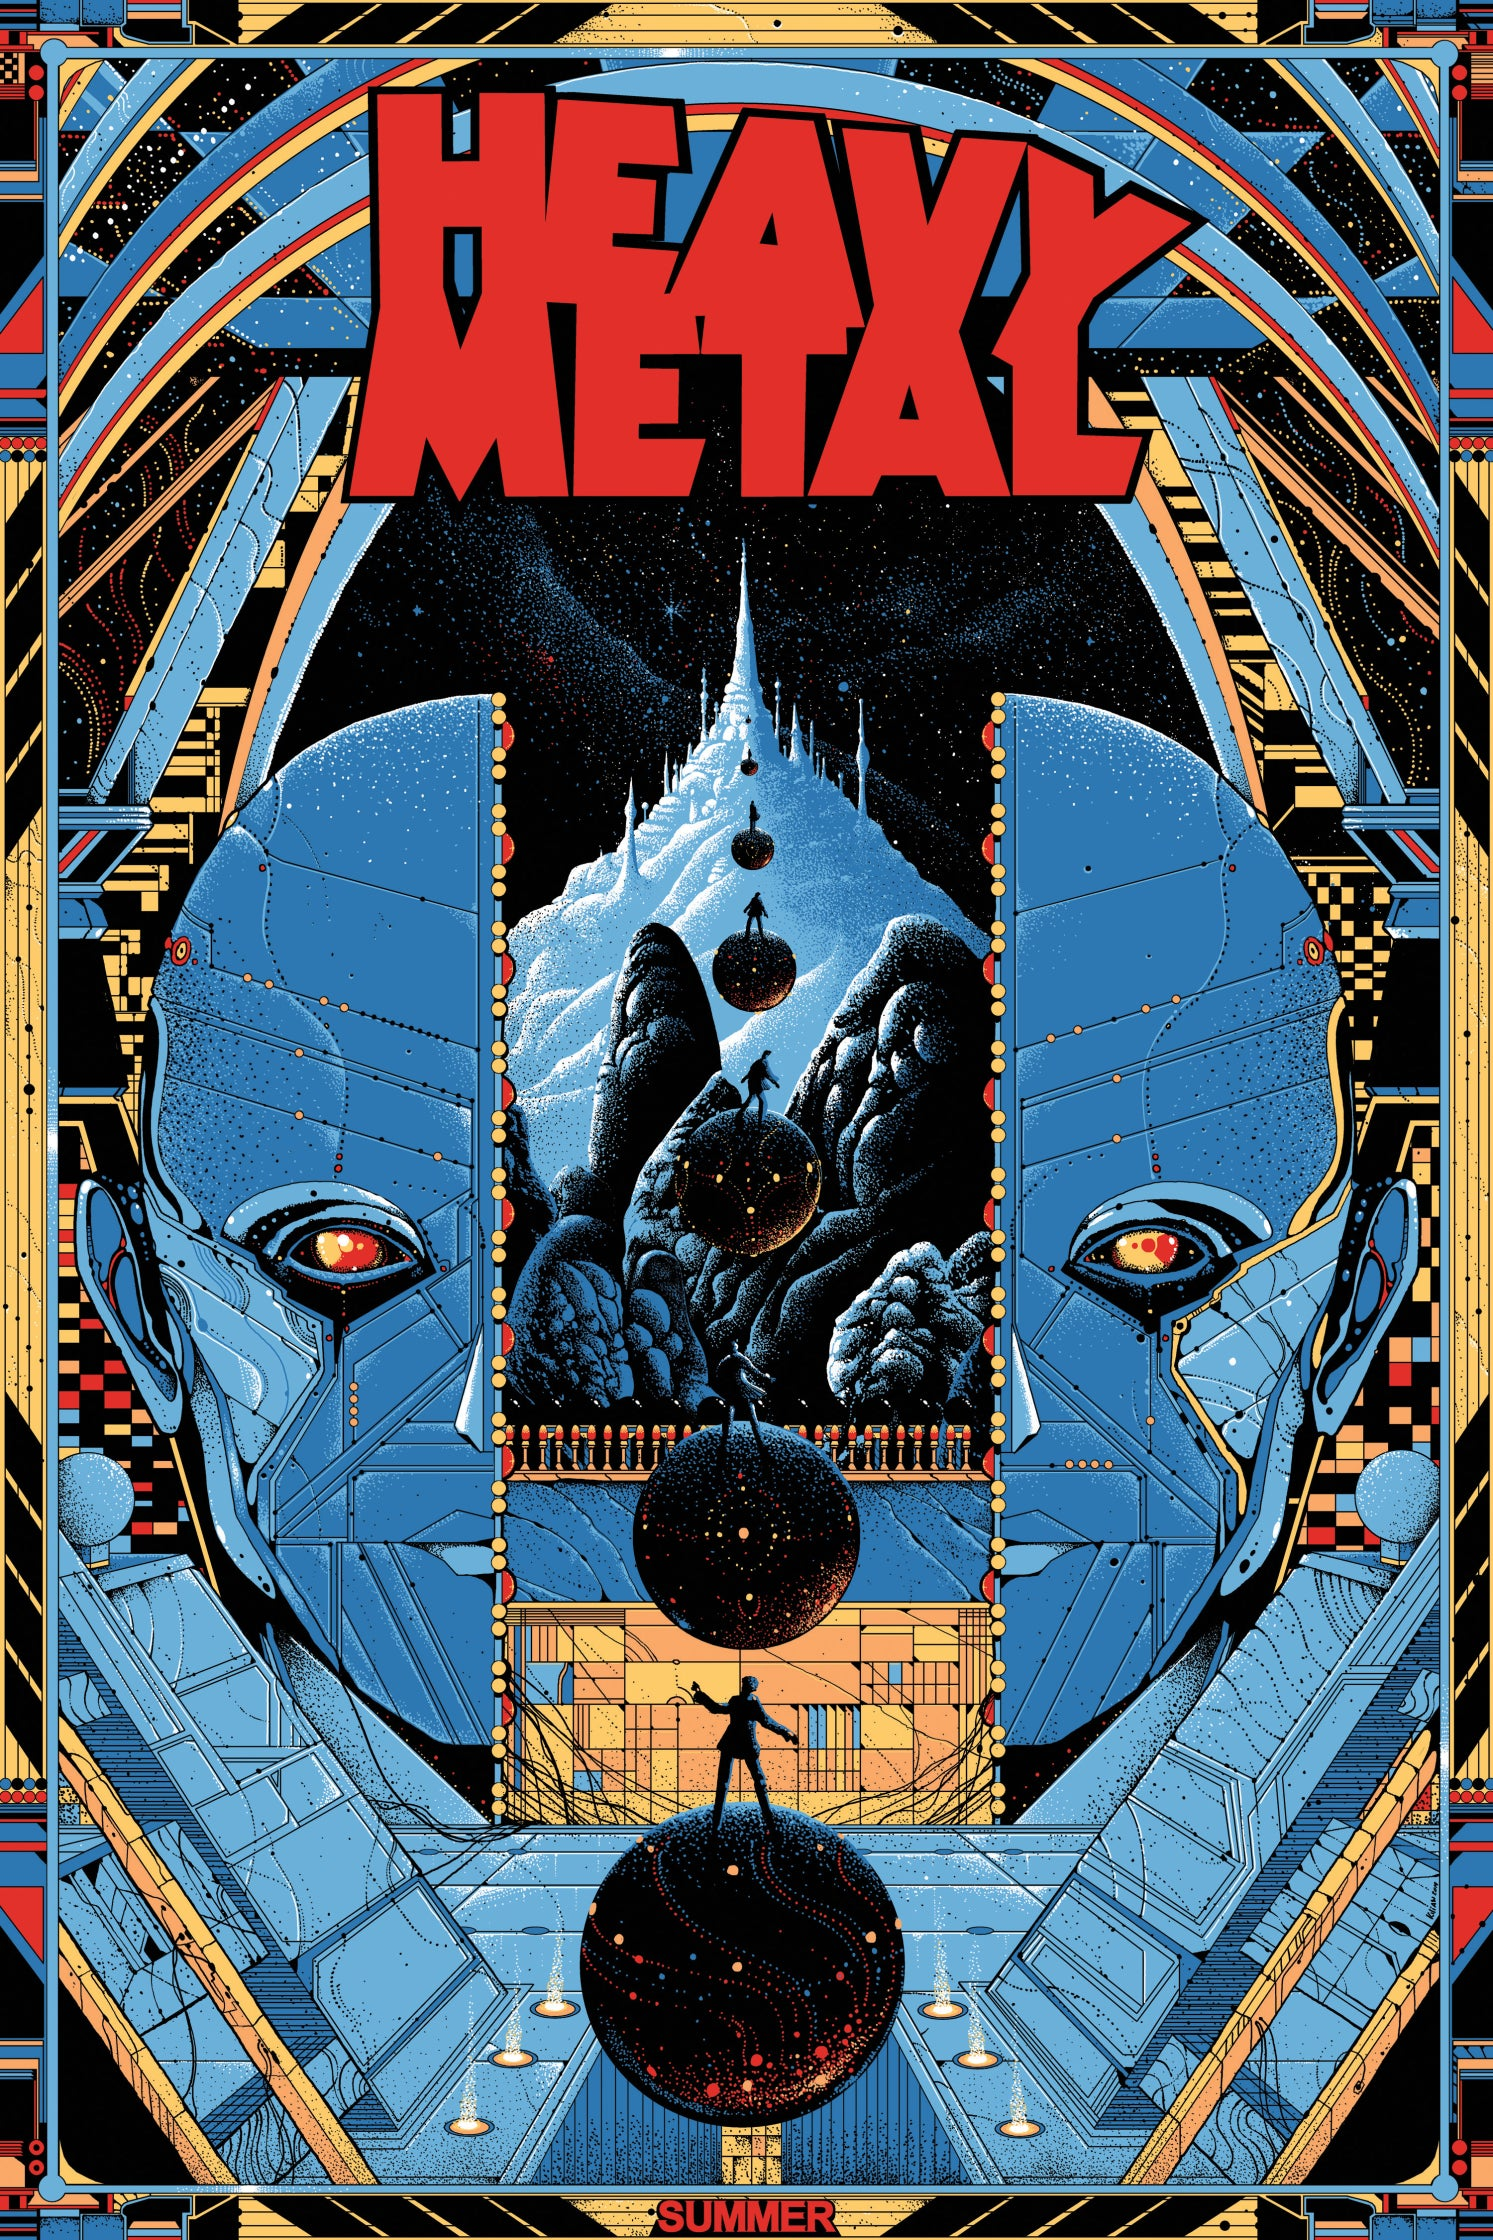 HEAVY METAL (artist proof) by Kilian Eng